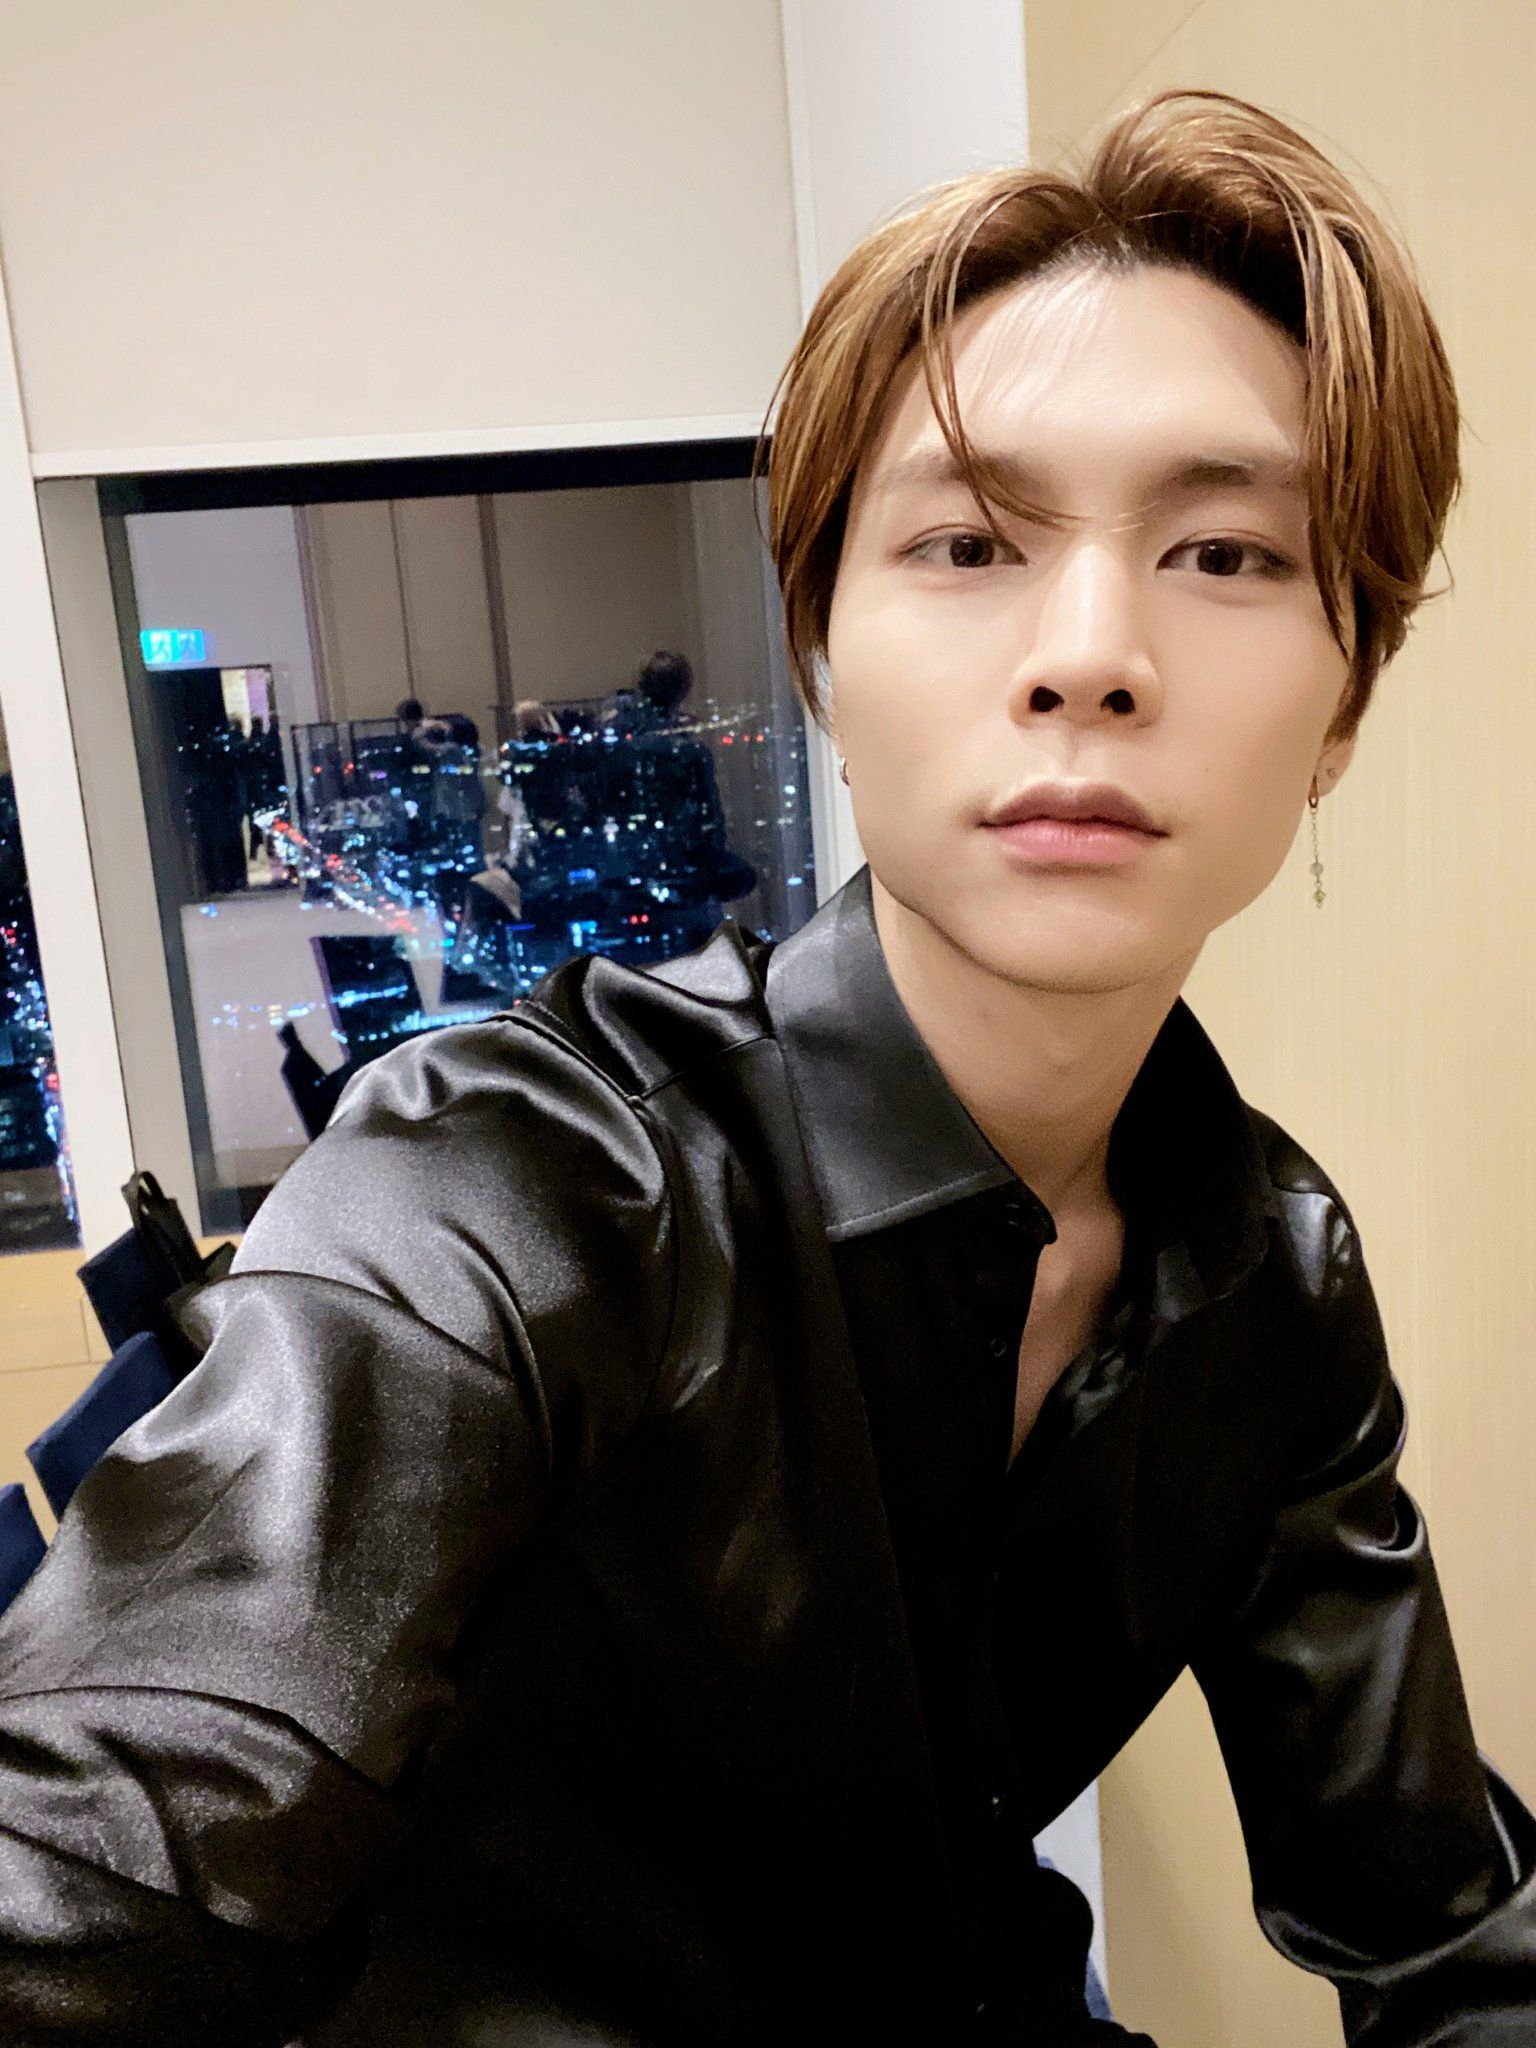 Nct 127 On Twitter Nct 127 Johnny Nct Johnny Nct 127